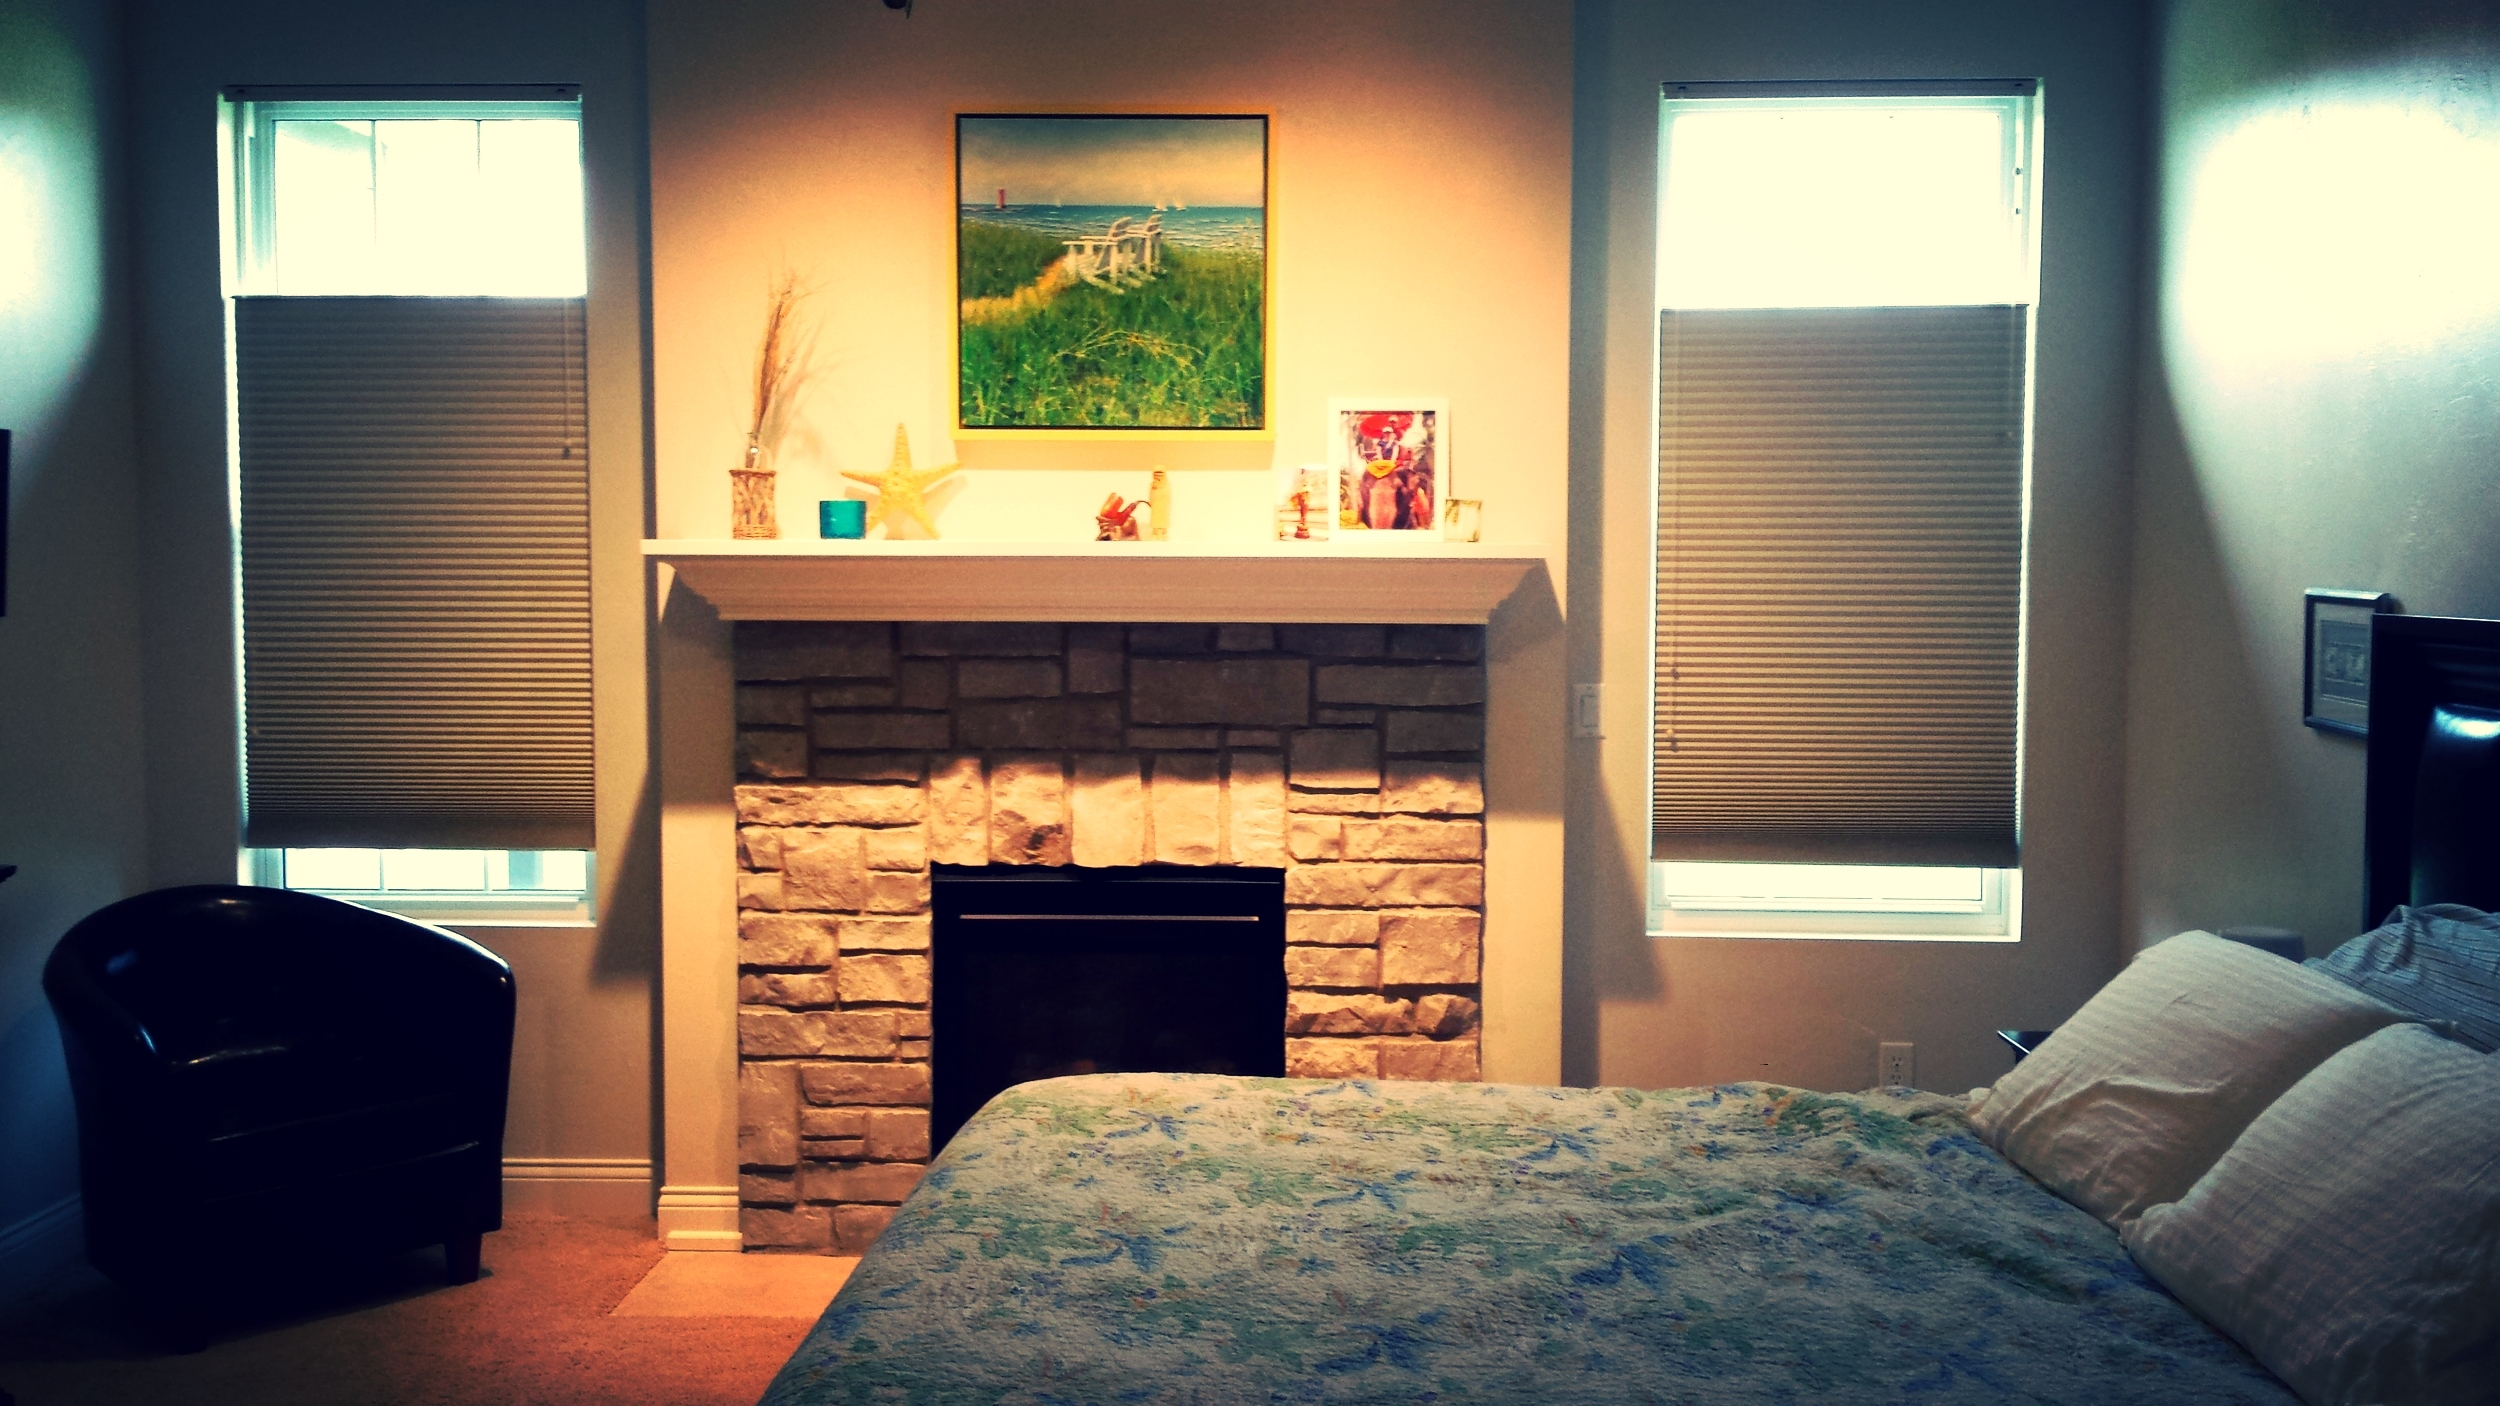 I could get used to having a fireplace in my bedroom. How about you?